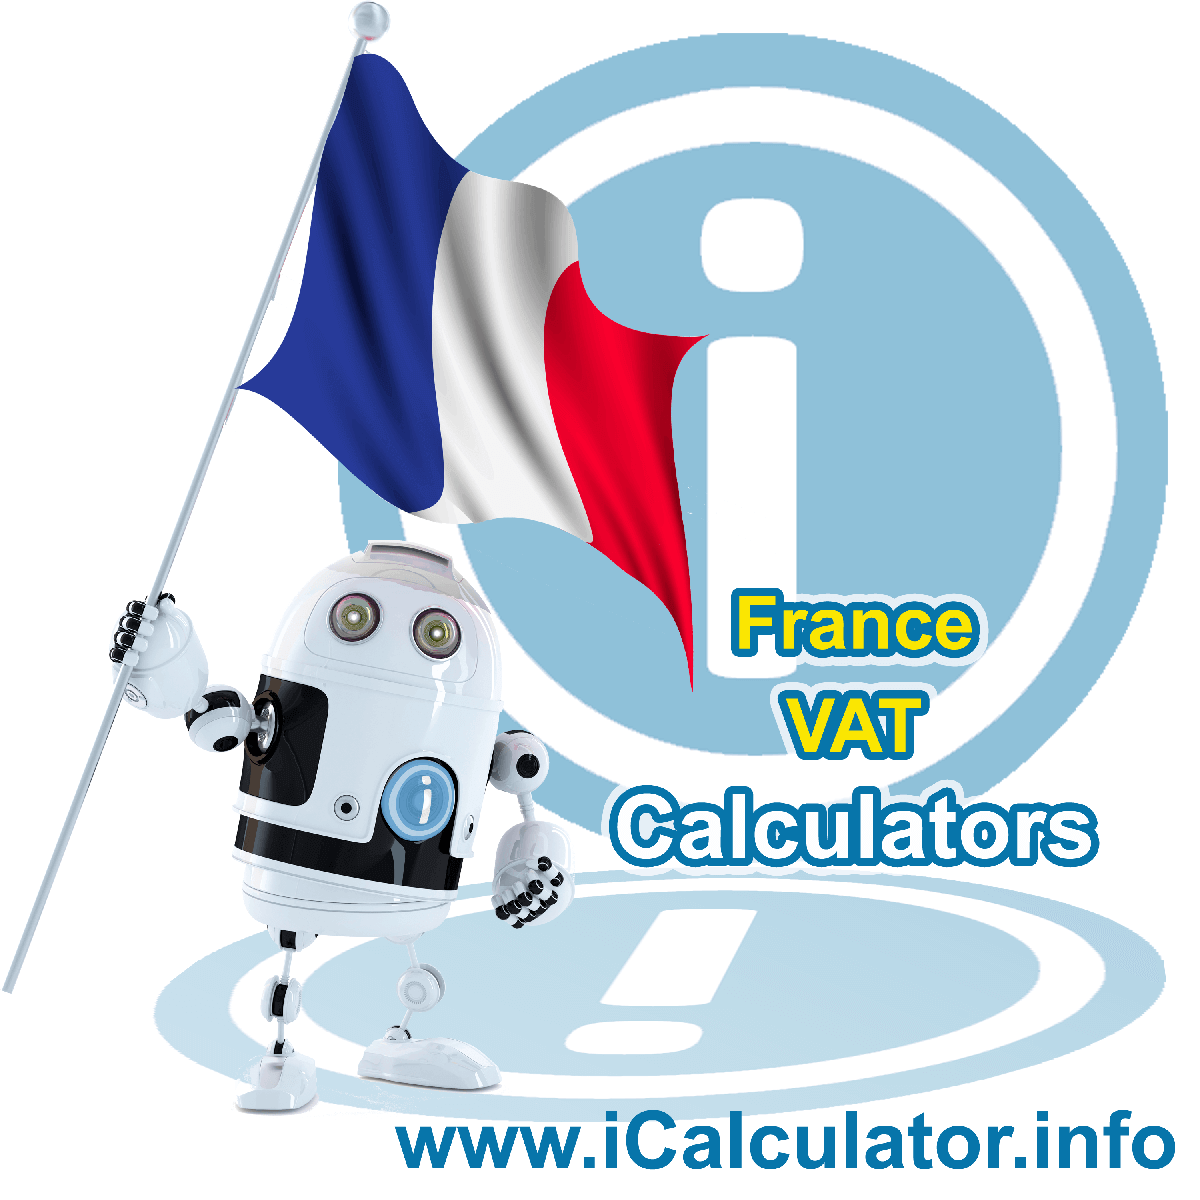 France VAT Calculator. This image shows the France flag and information relating to the VAT formula used for calculating Value Added Tax in France using the France VAT Calculator in 2020